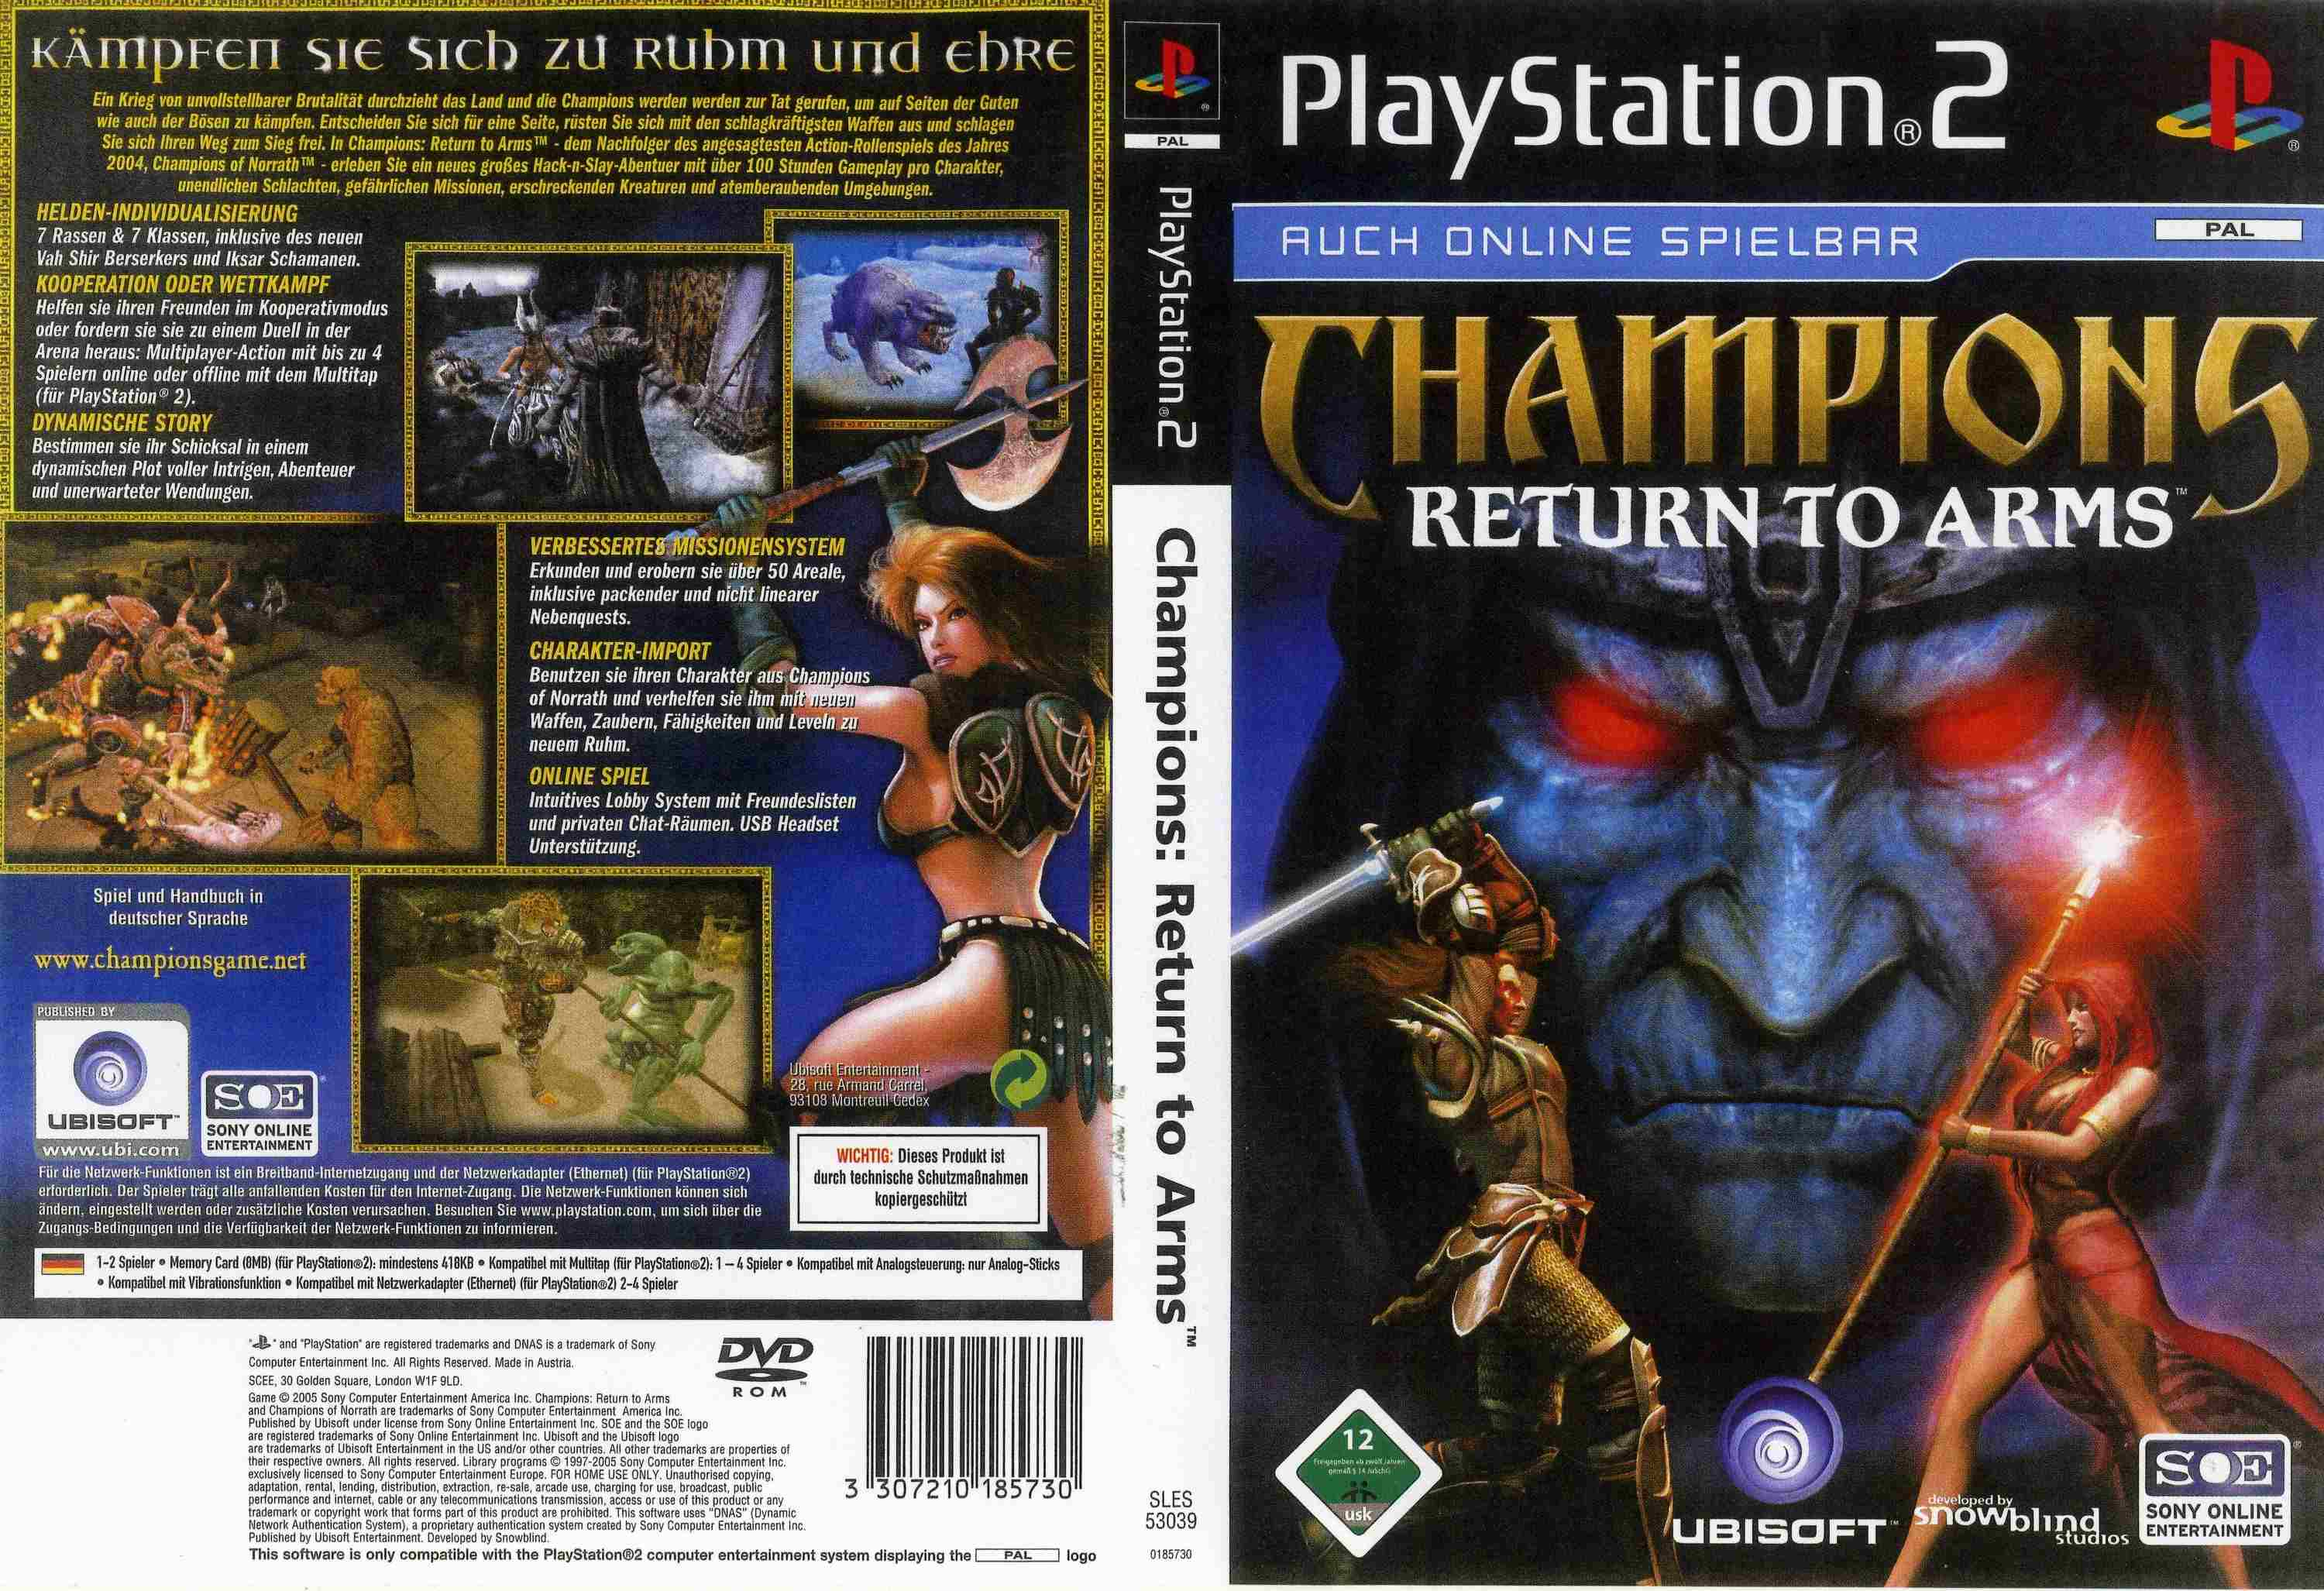 champions ps2 return to arms